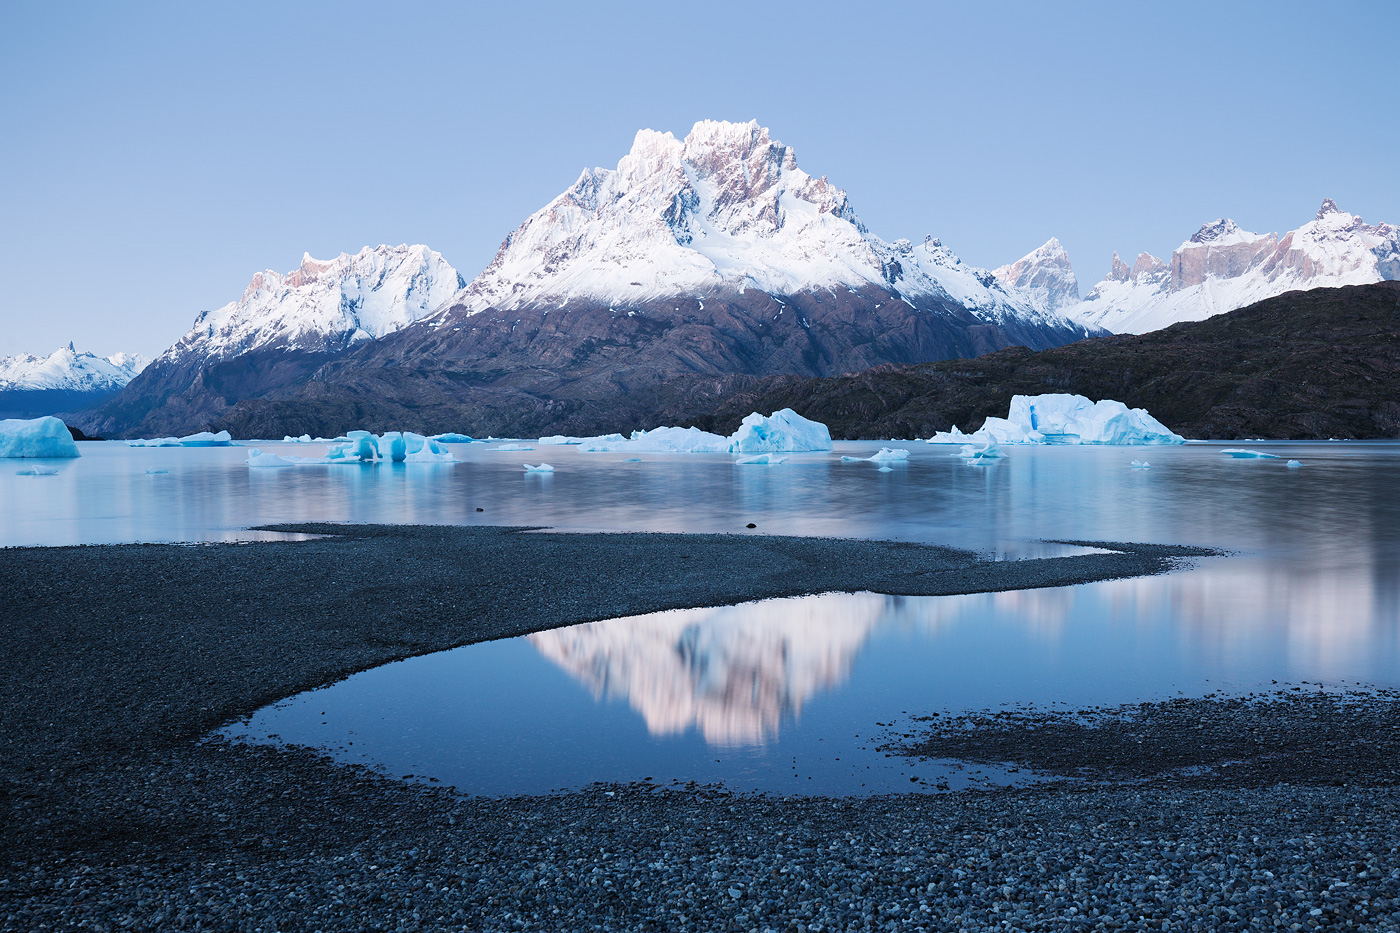 Heaven on Earth, Dreamy Landscapes of Patagonia by Lukas Furlan